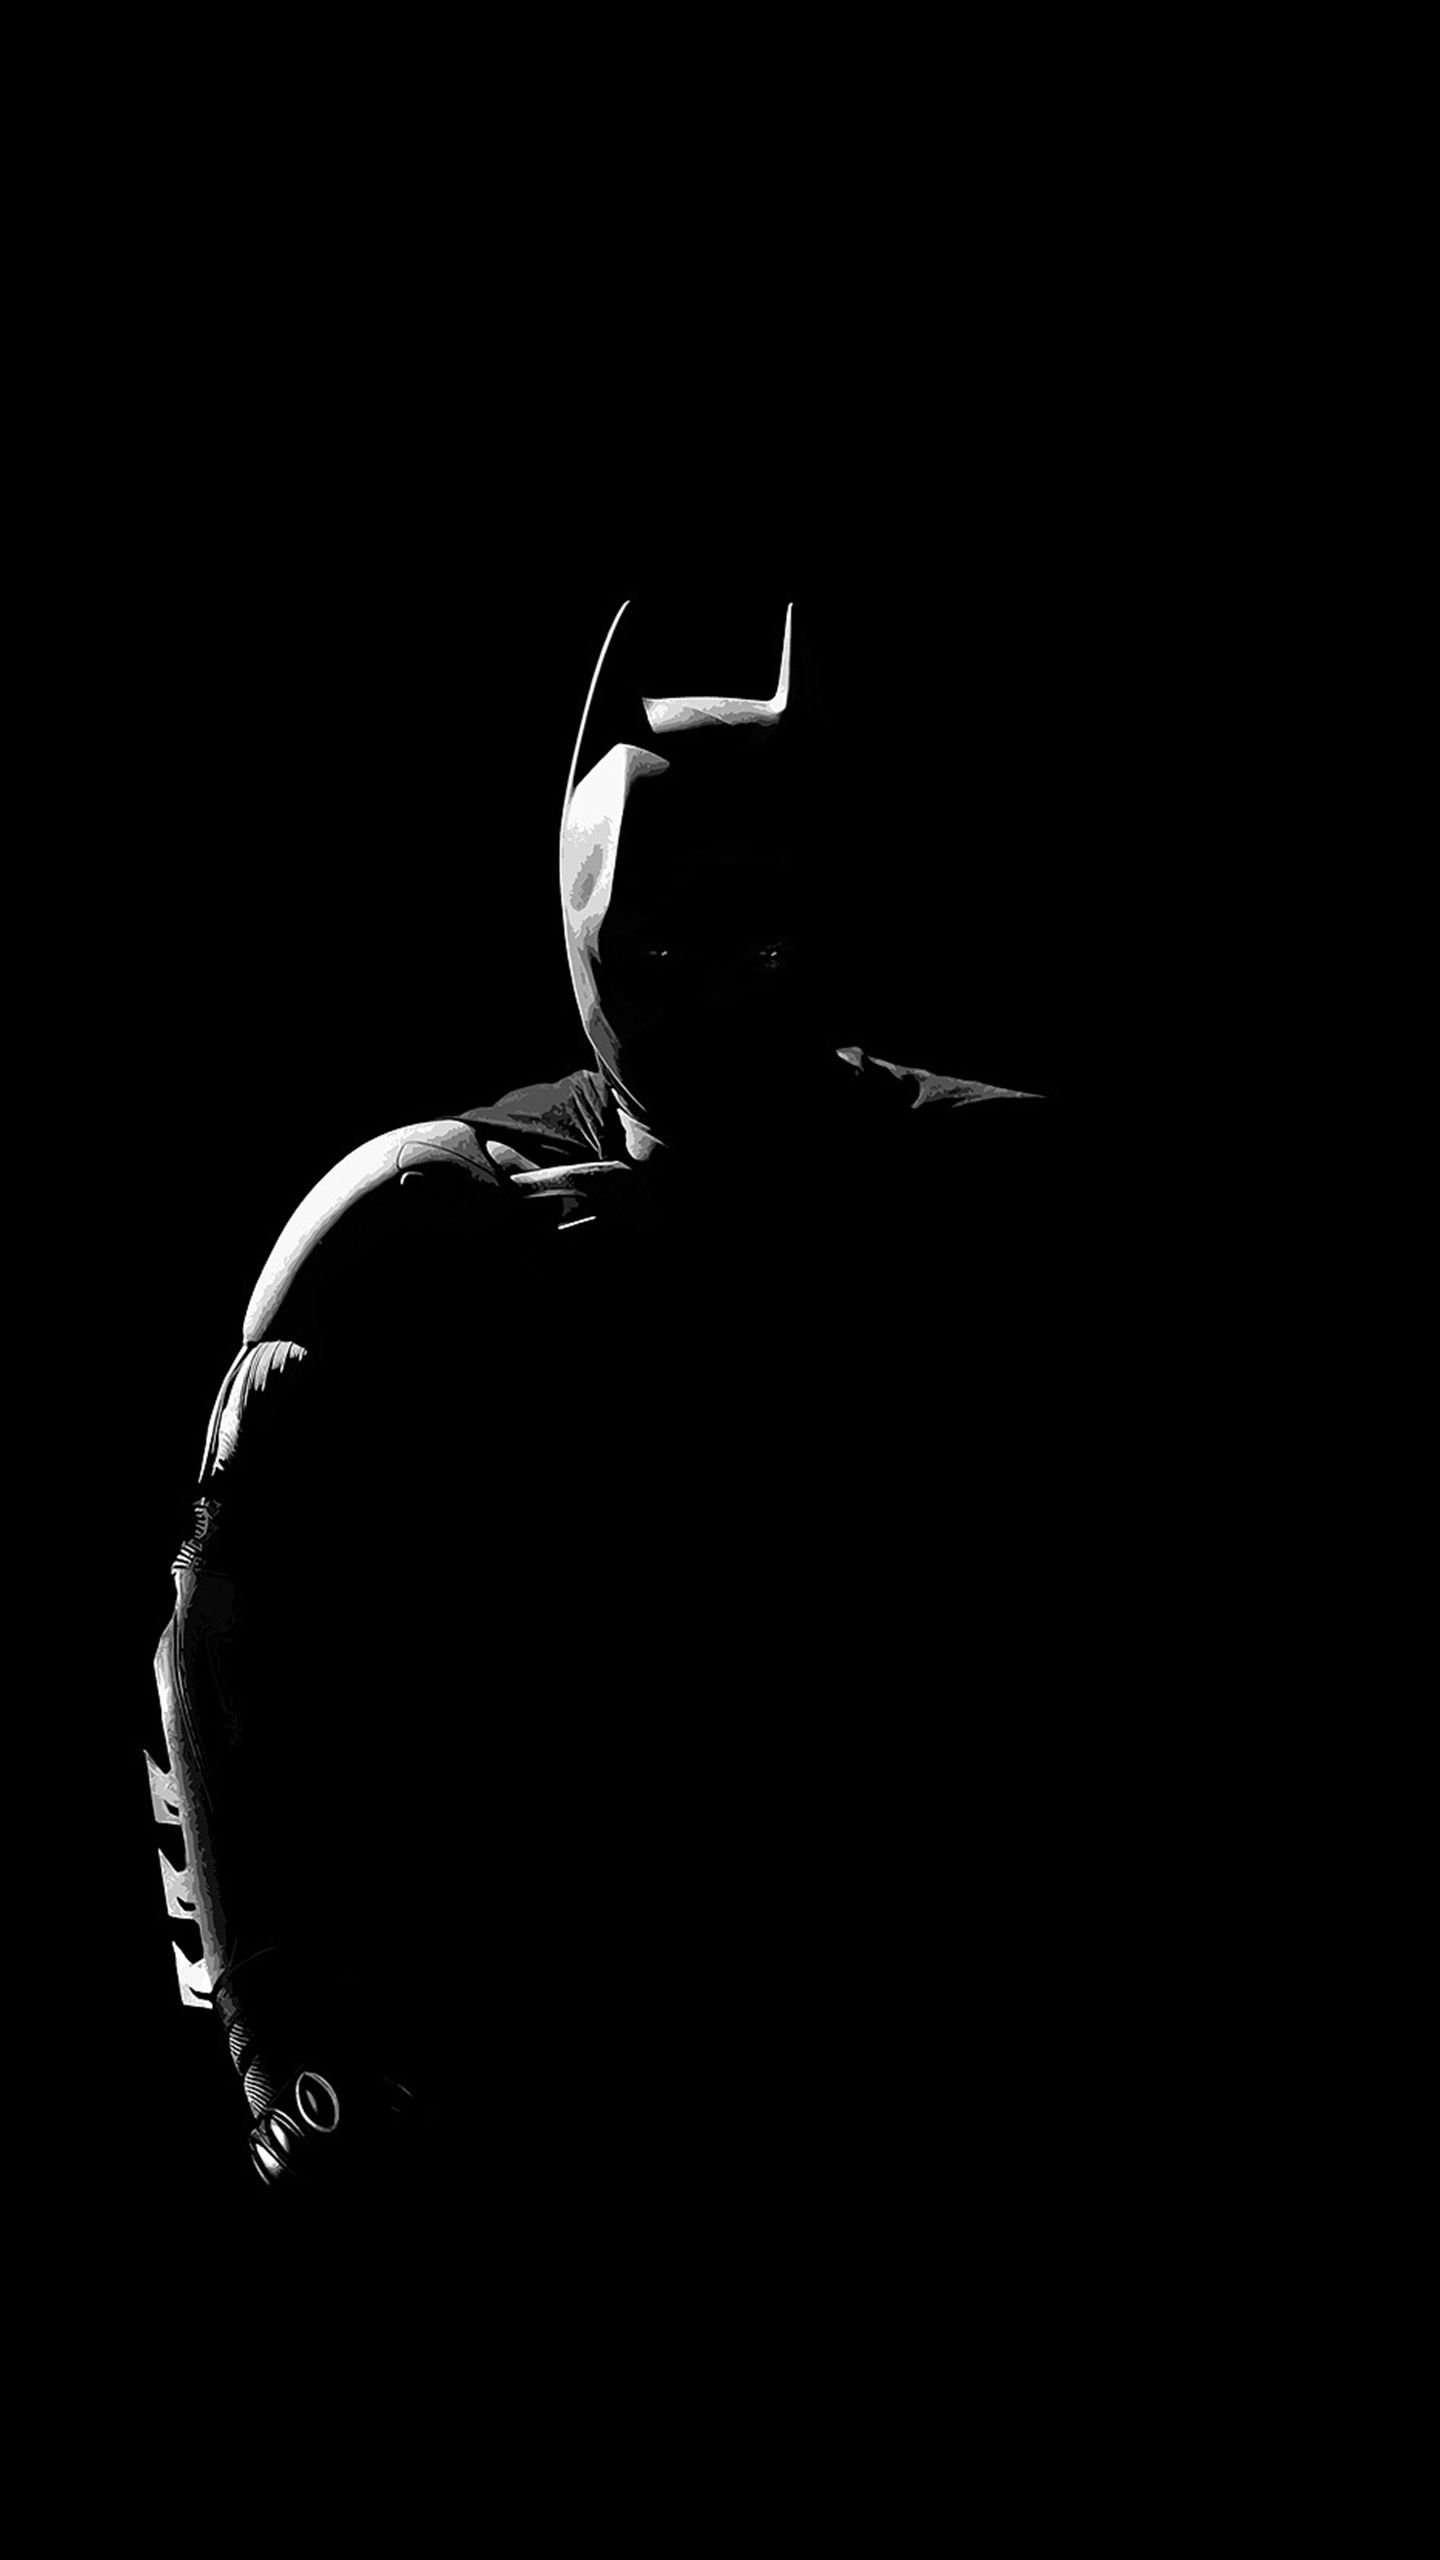 Black Wallpaper Amoled : Dark Knight  Amoled Lockscreen Homescreen Wallpapers ...